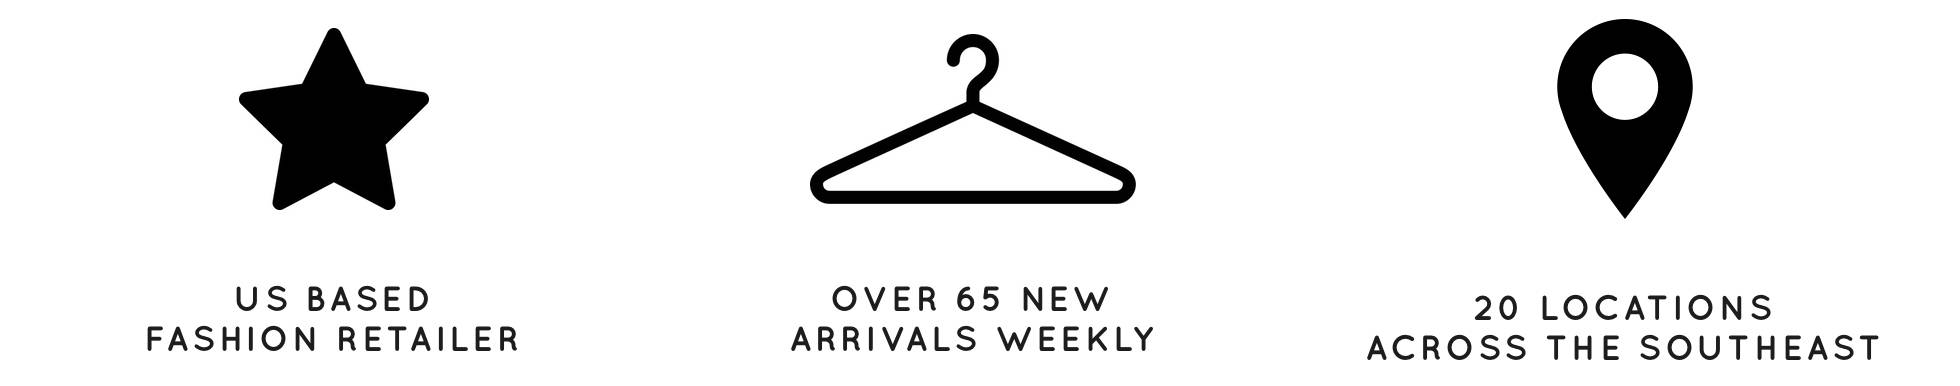 US BASED FASHION RETAILER, OVER 65 NEW ARRIVALS WEEKLY, 20 LOCATIONS ACROSS THE SOUTHEAST, dress up, shopdressup, about us, our story, who we are